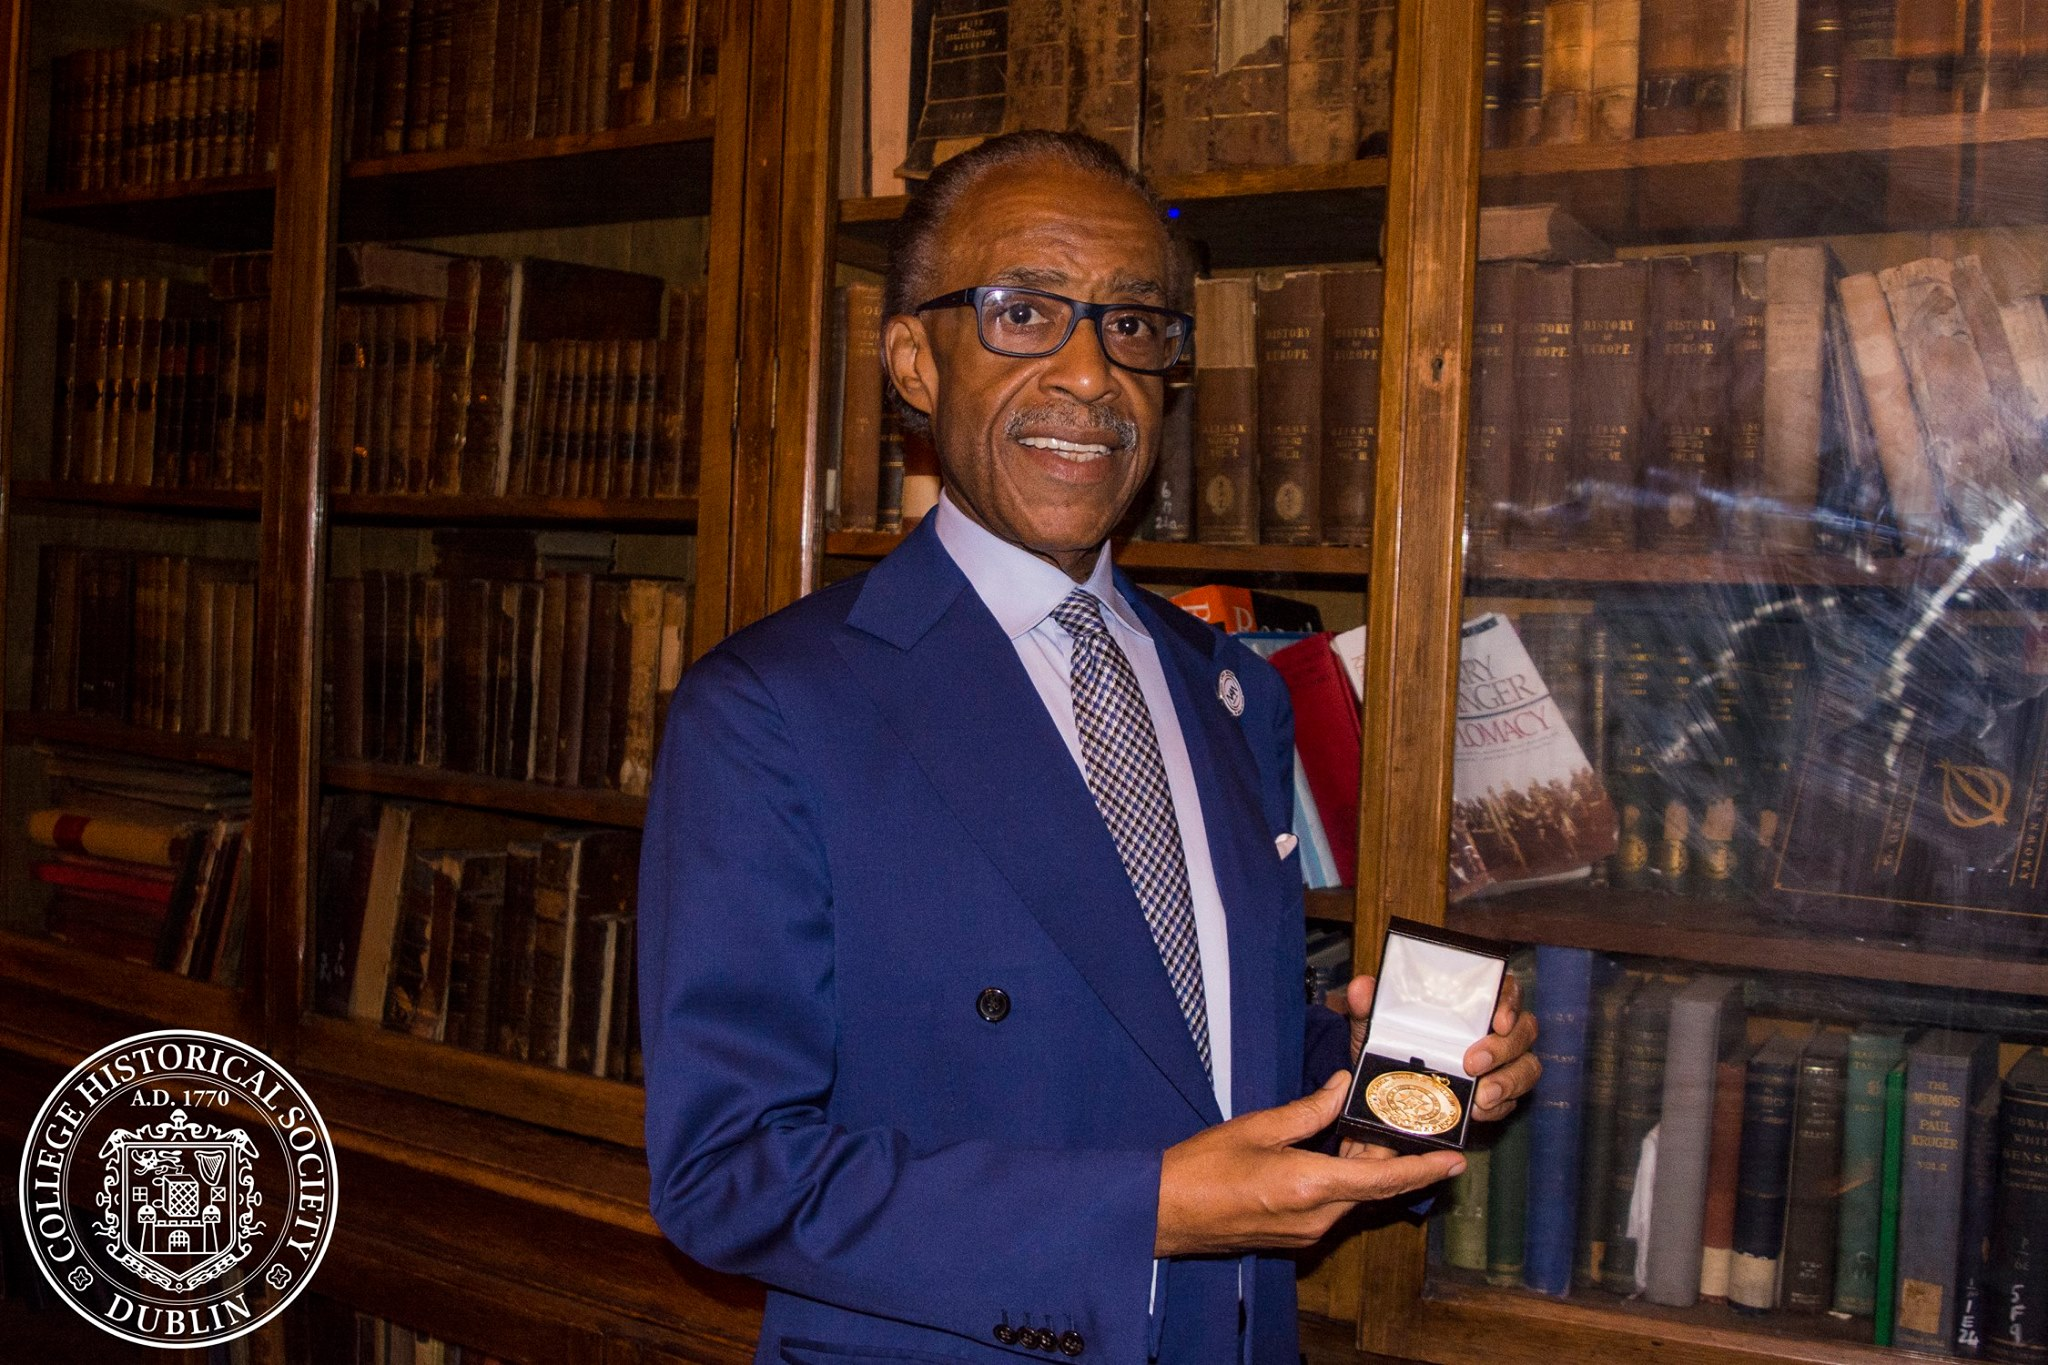 Al Sharpton awarded the Hist's Gold Medal for Outstanding Contribution to Public Discourse